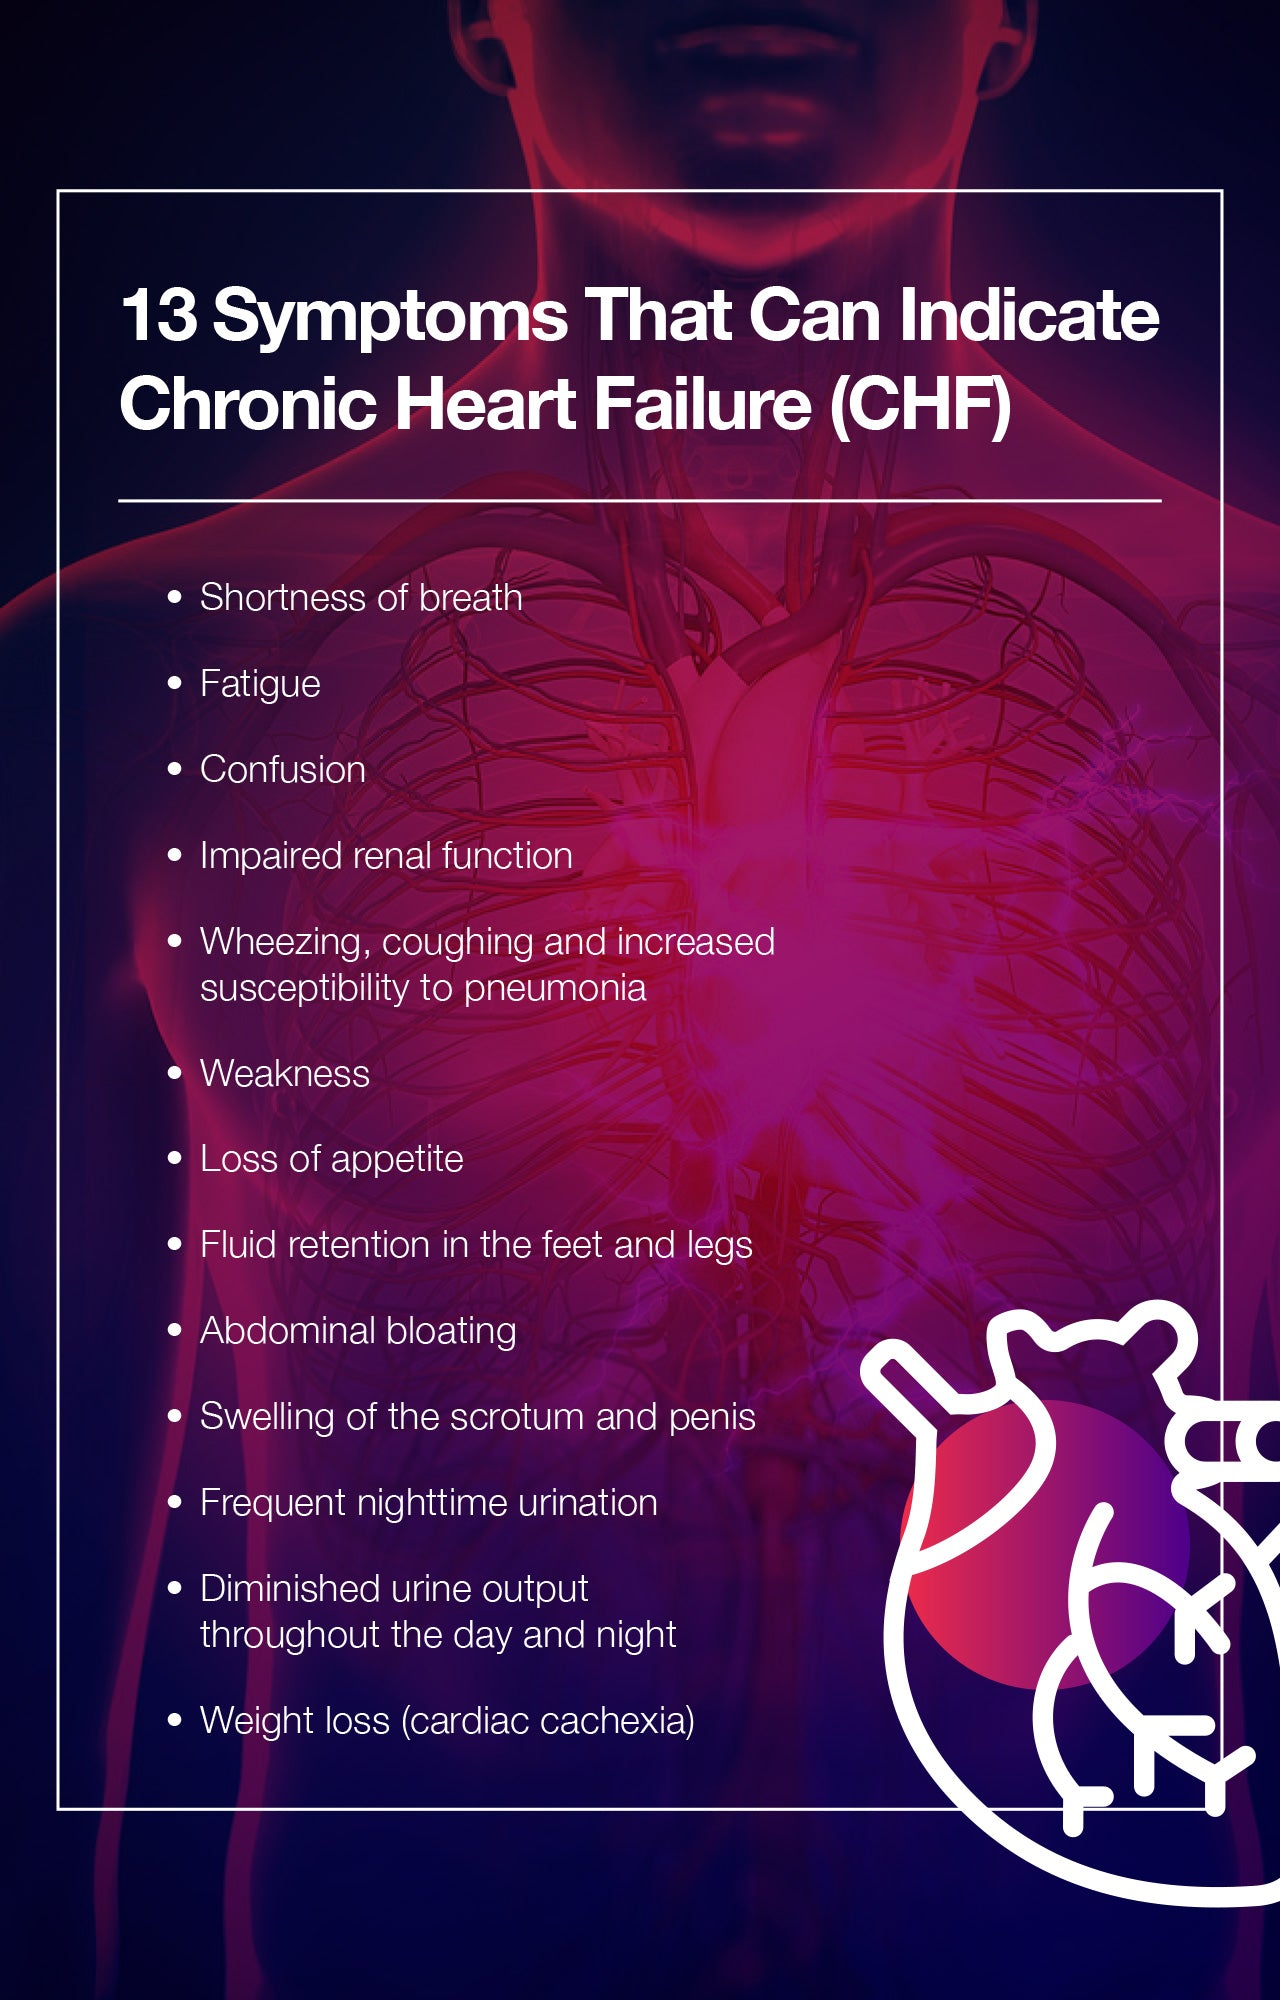 13 Symptoms That Can Indicate Chronic Heart Failure (CHF)